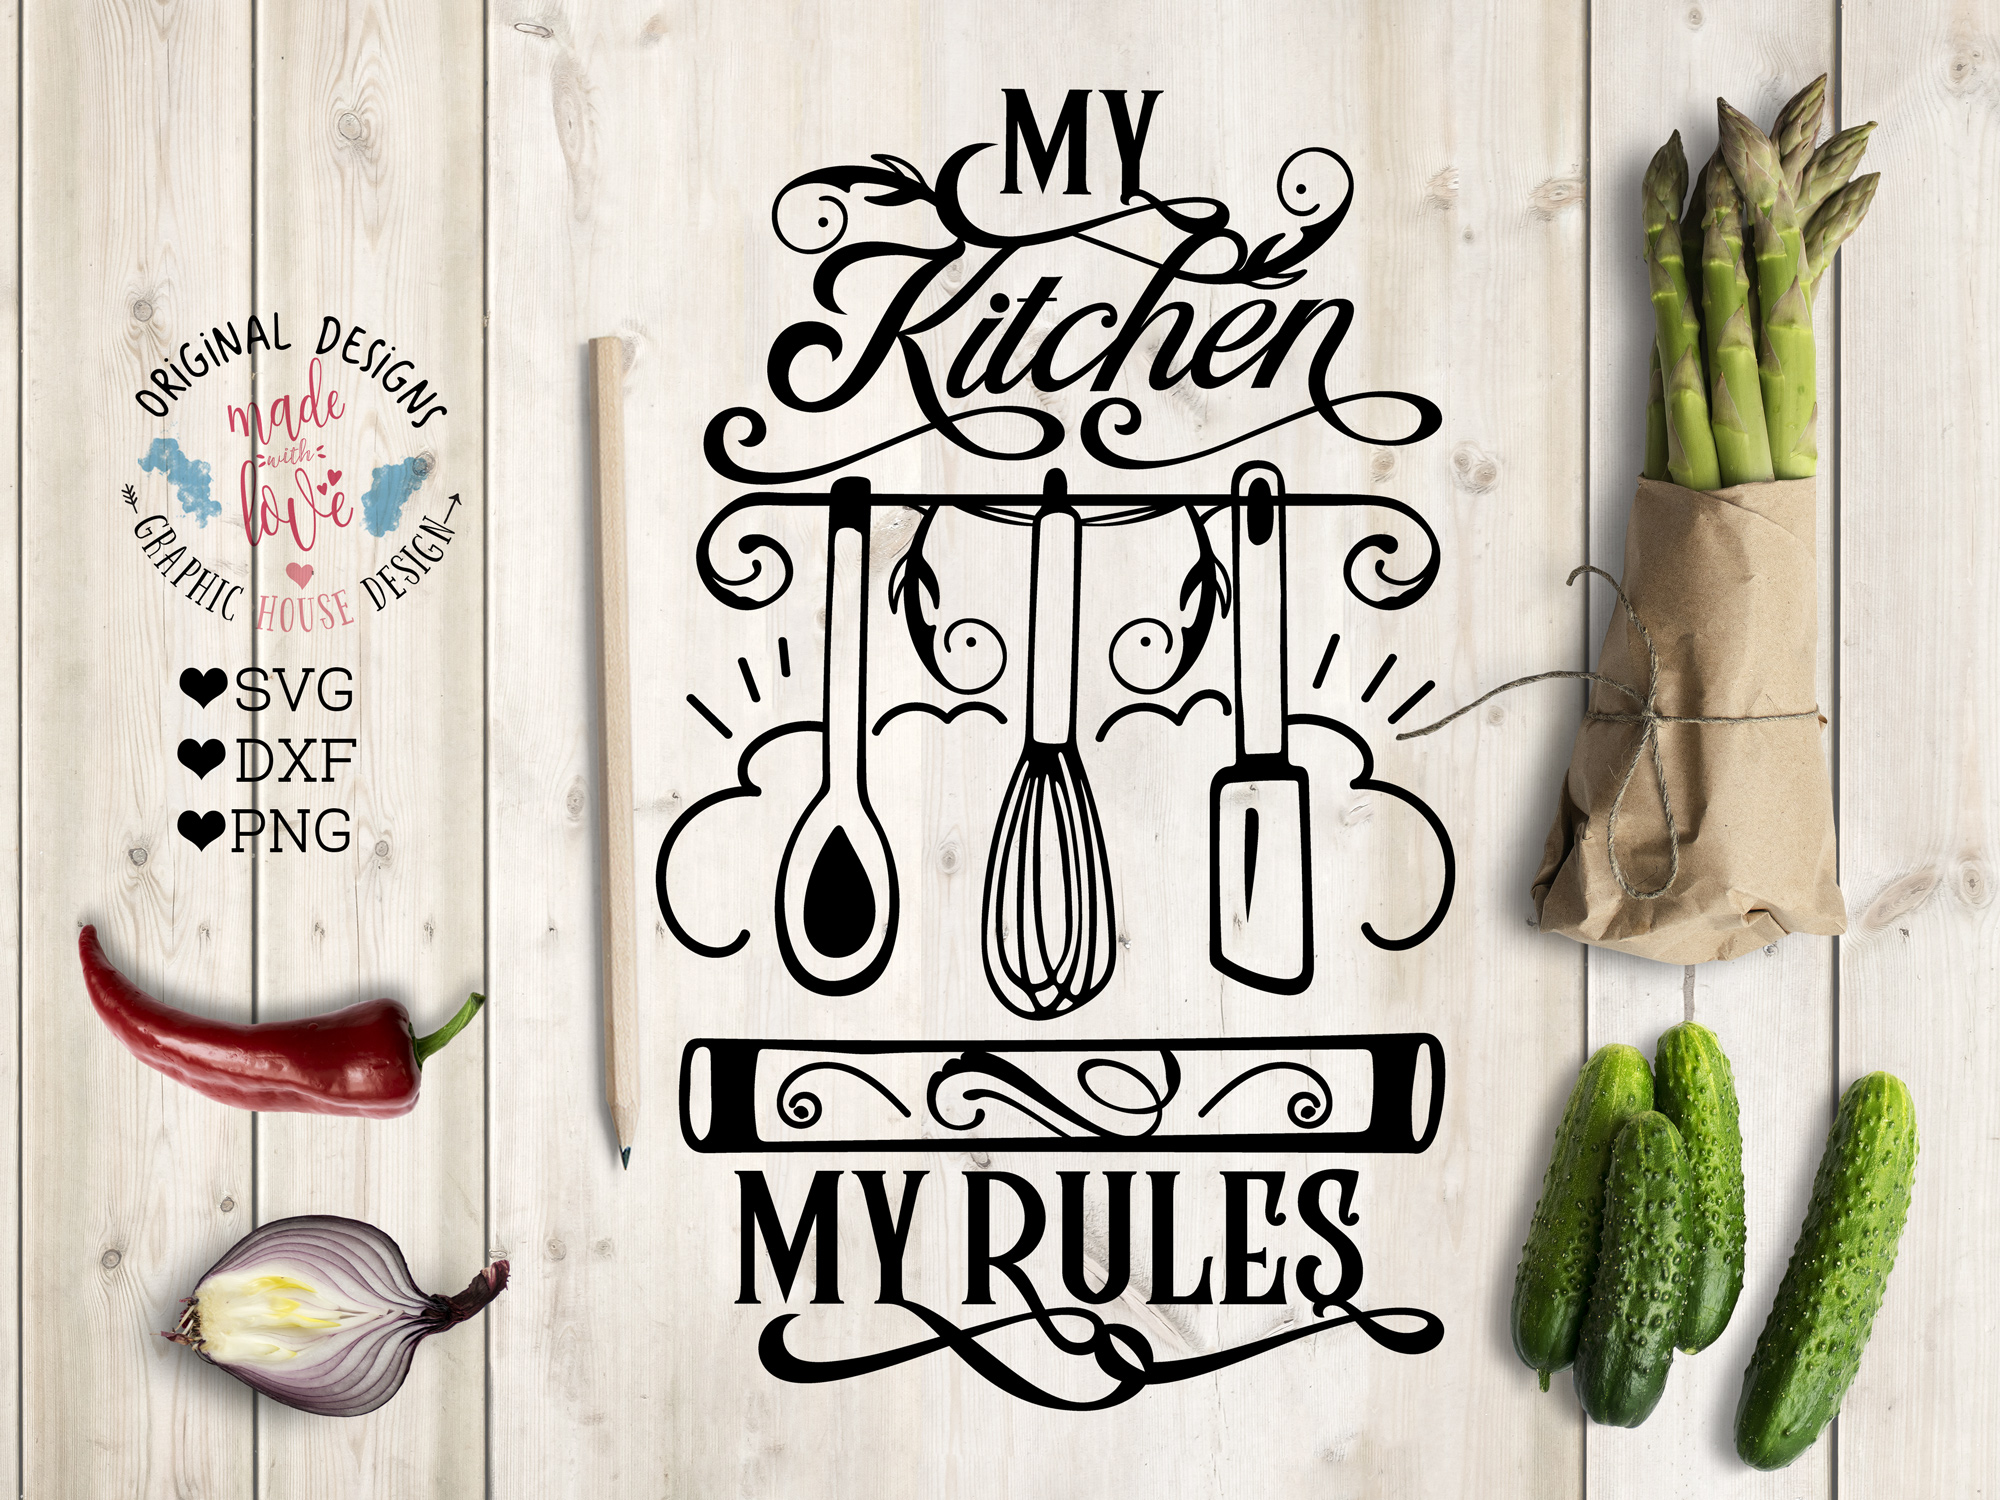 My Kitchen My Rules Cut File and Printable SVG, DXF, PNG example image 1